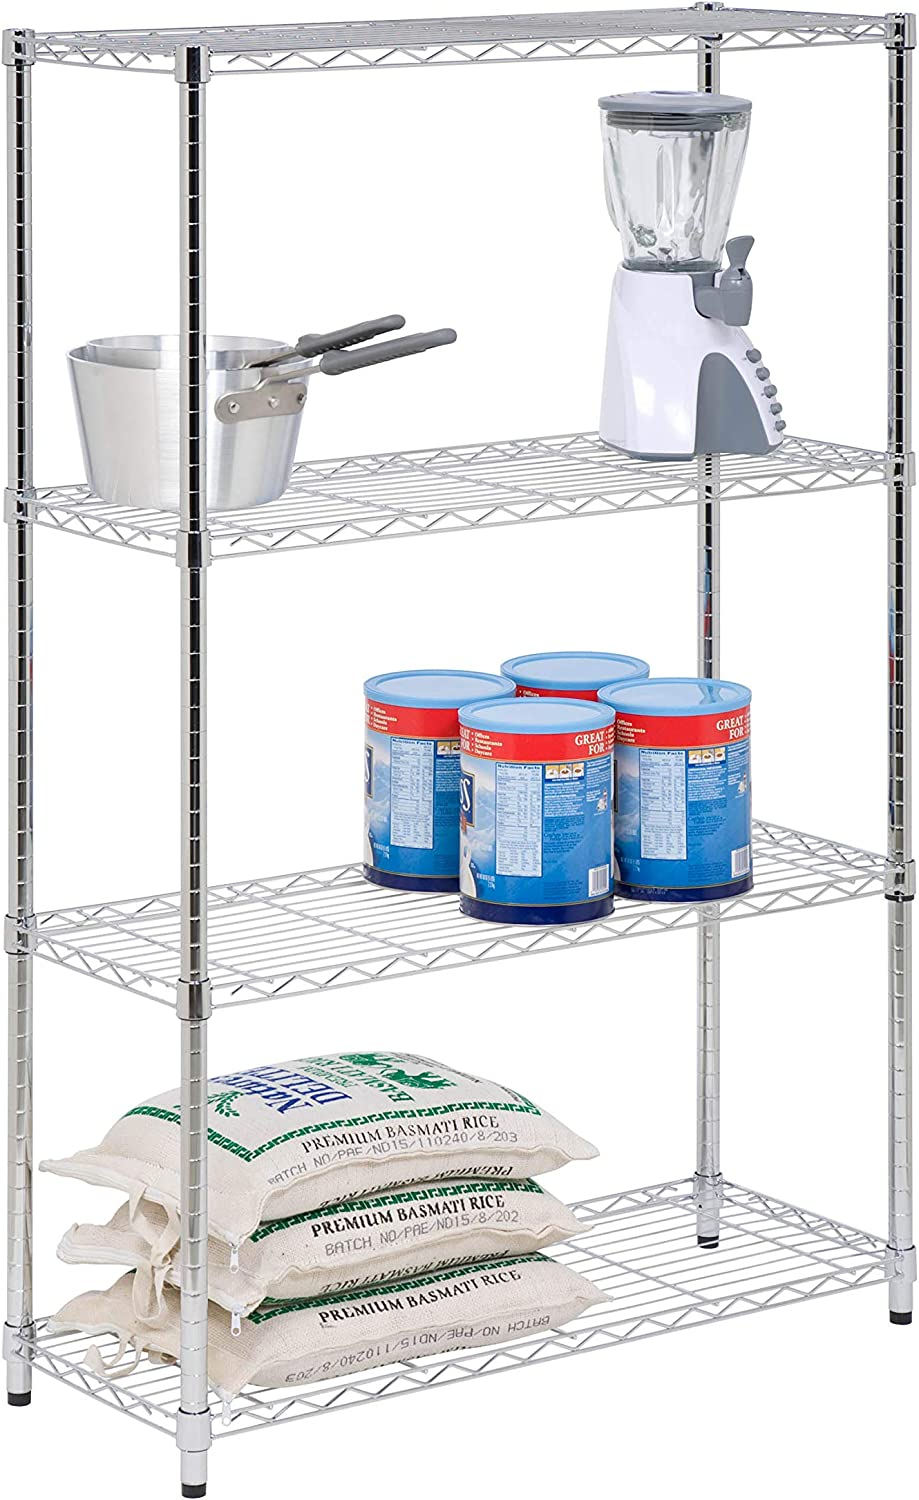 Honey-Can-Do SHF-01906 4-Tier Chrome Shelving unit-250 lbs, 4-Tier